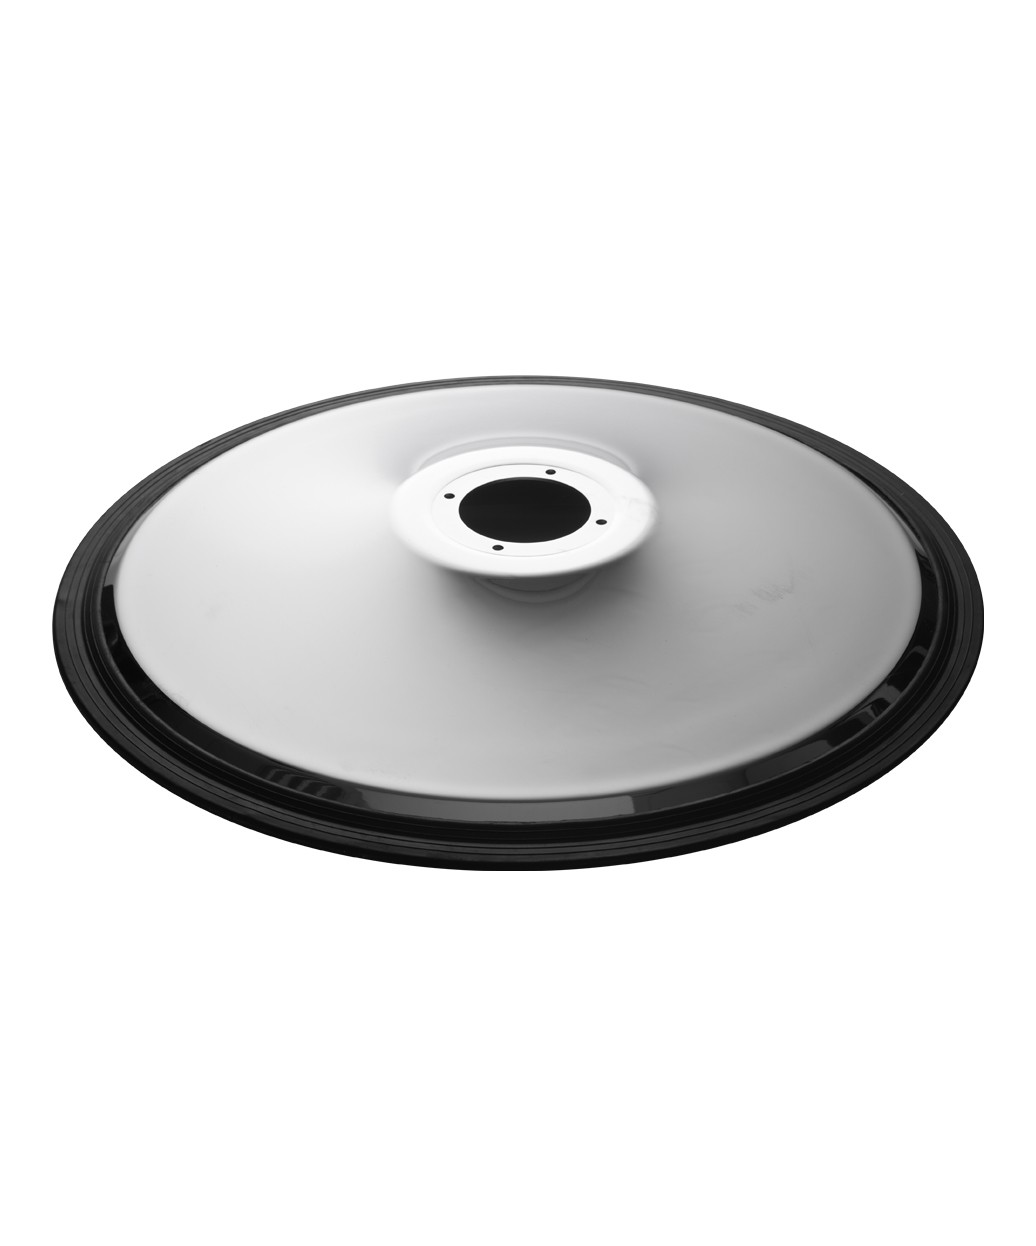 27 Base Plate for Barber Chair